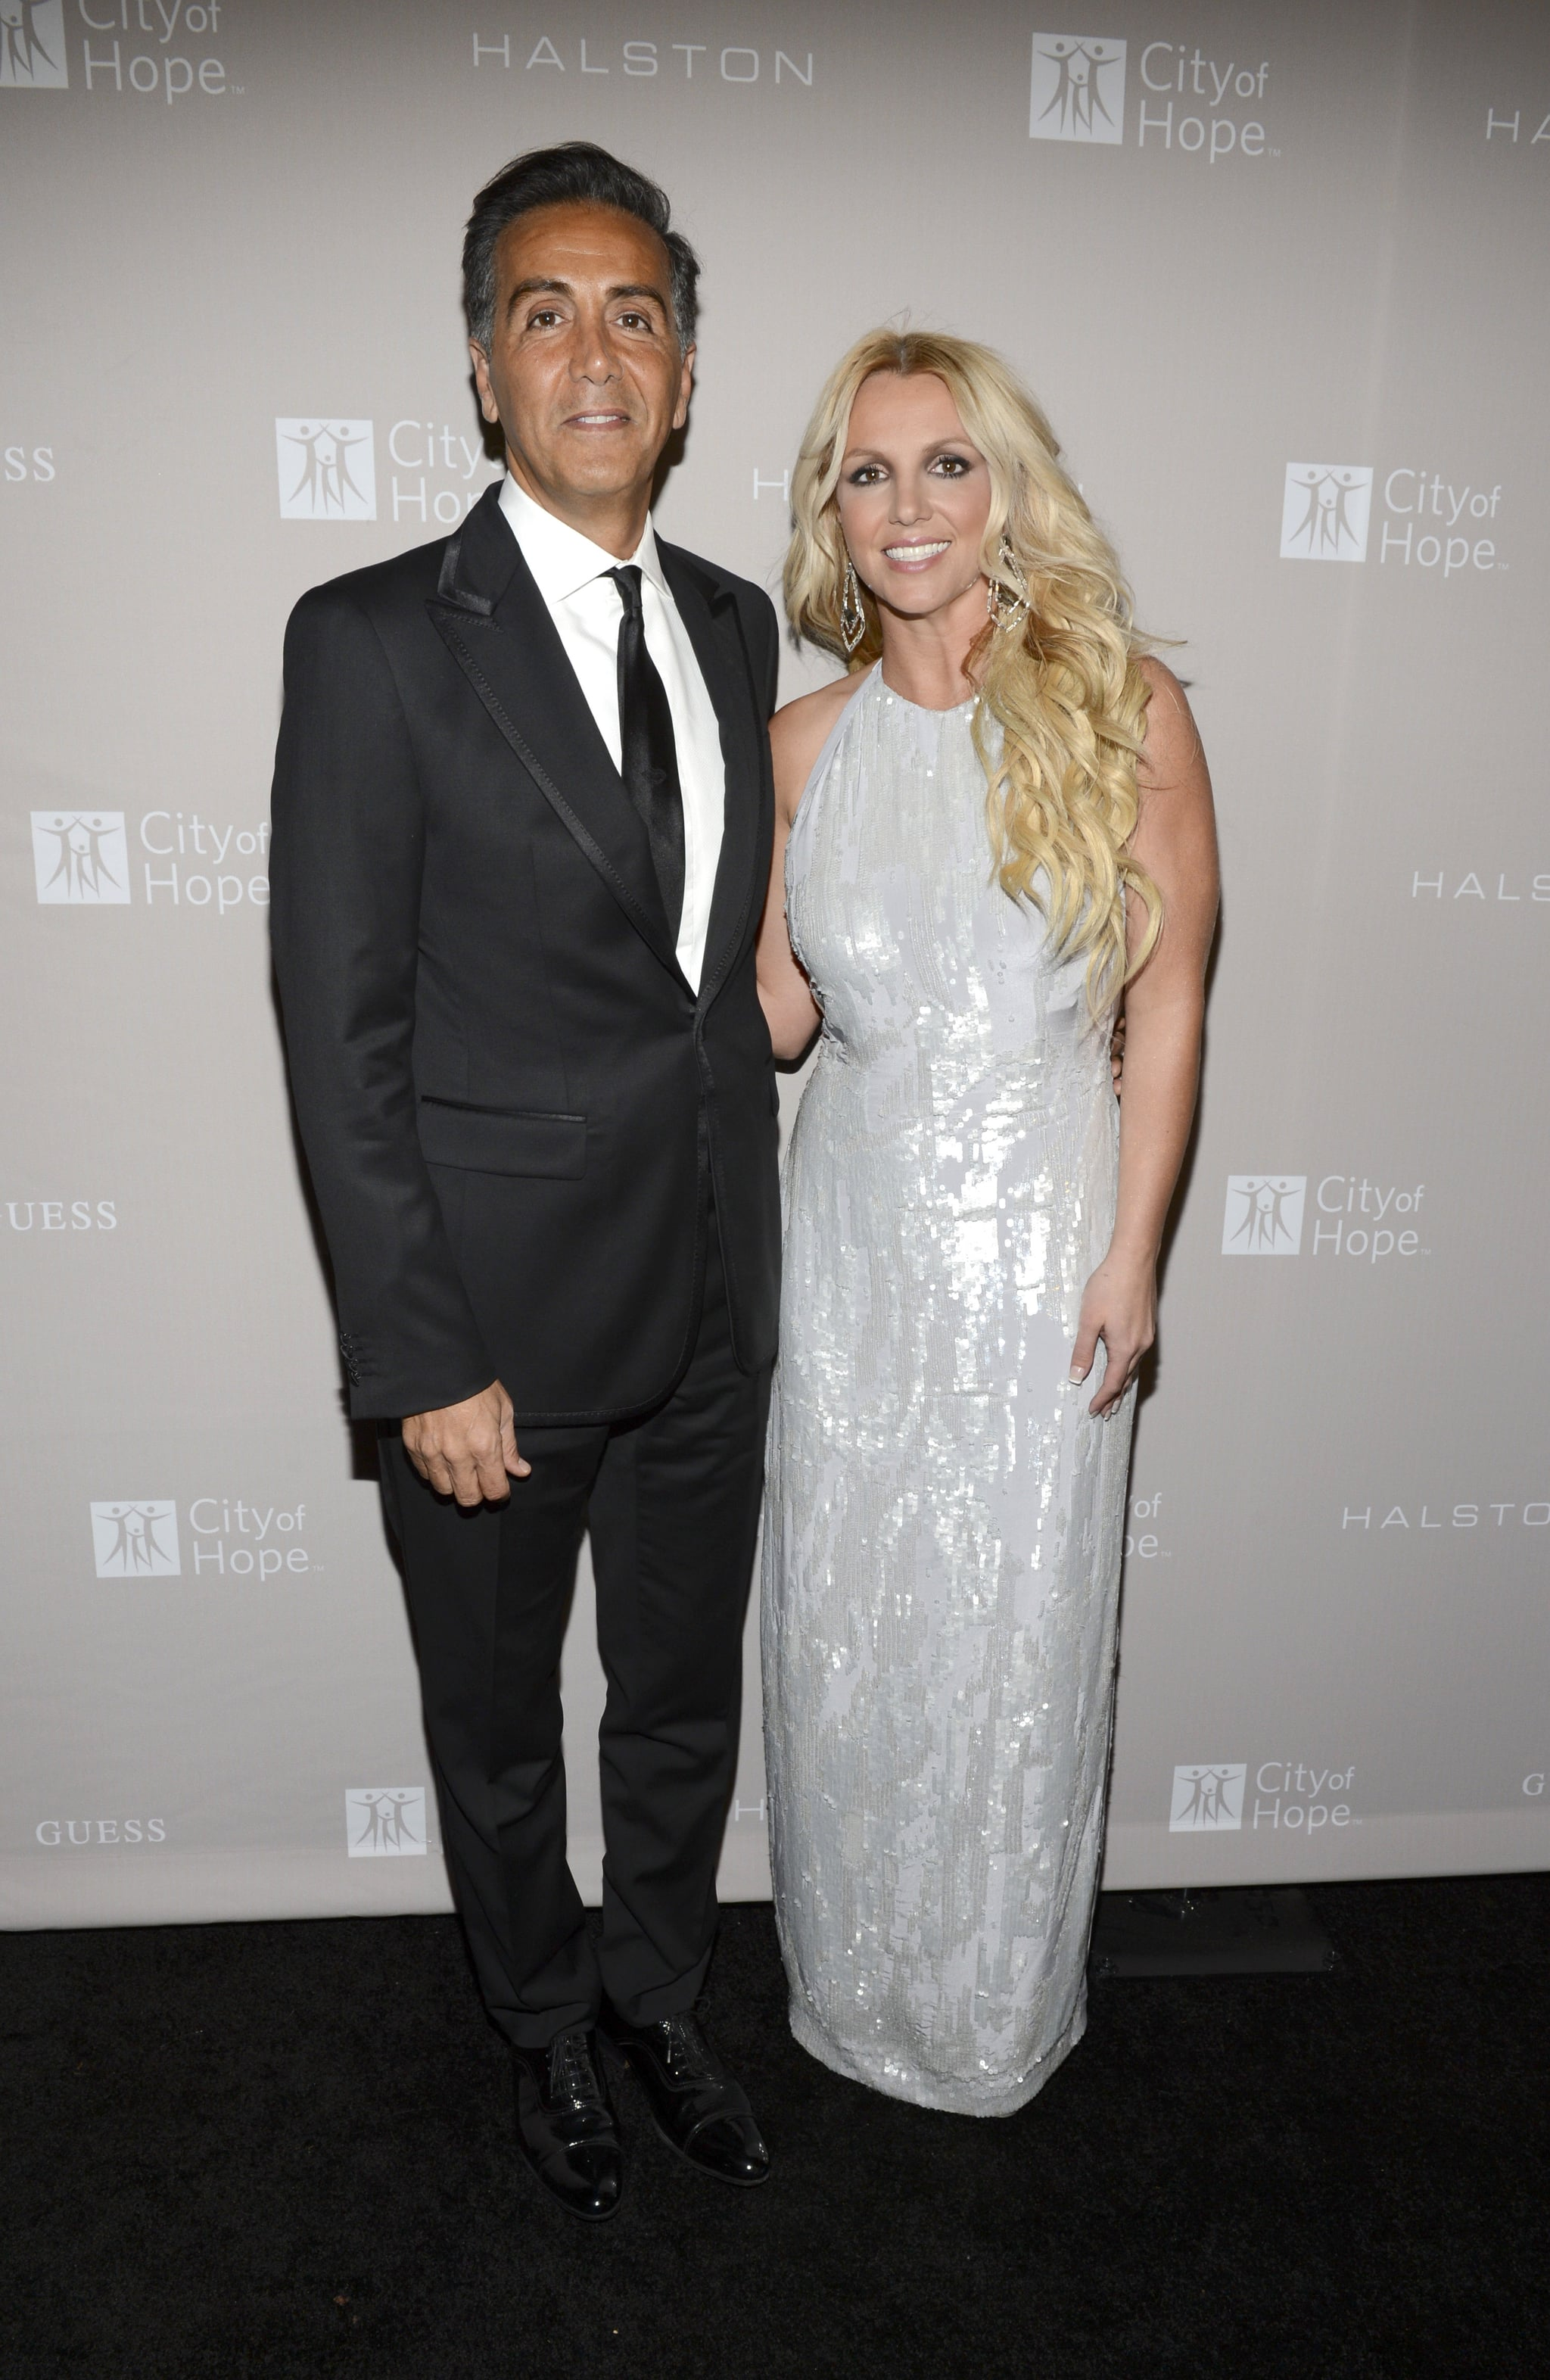 Britney Spears stepped out for the City of Hope charity's gala honoring Halston CEO Ben Malka in LA.